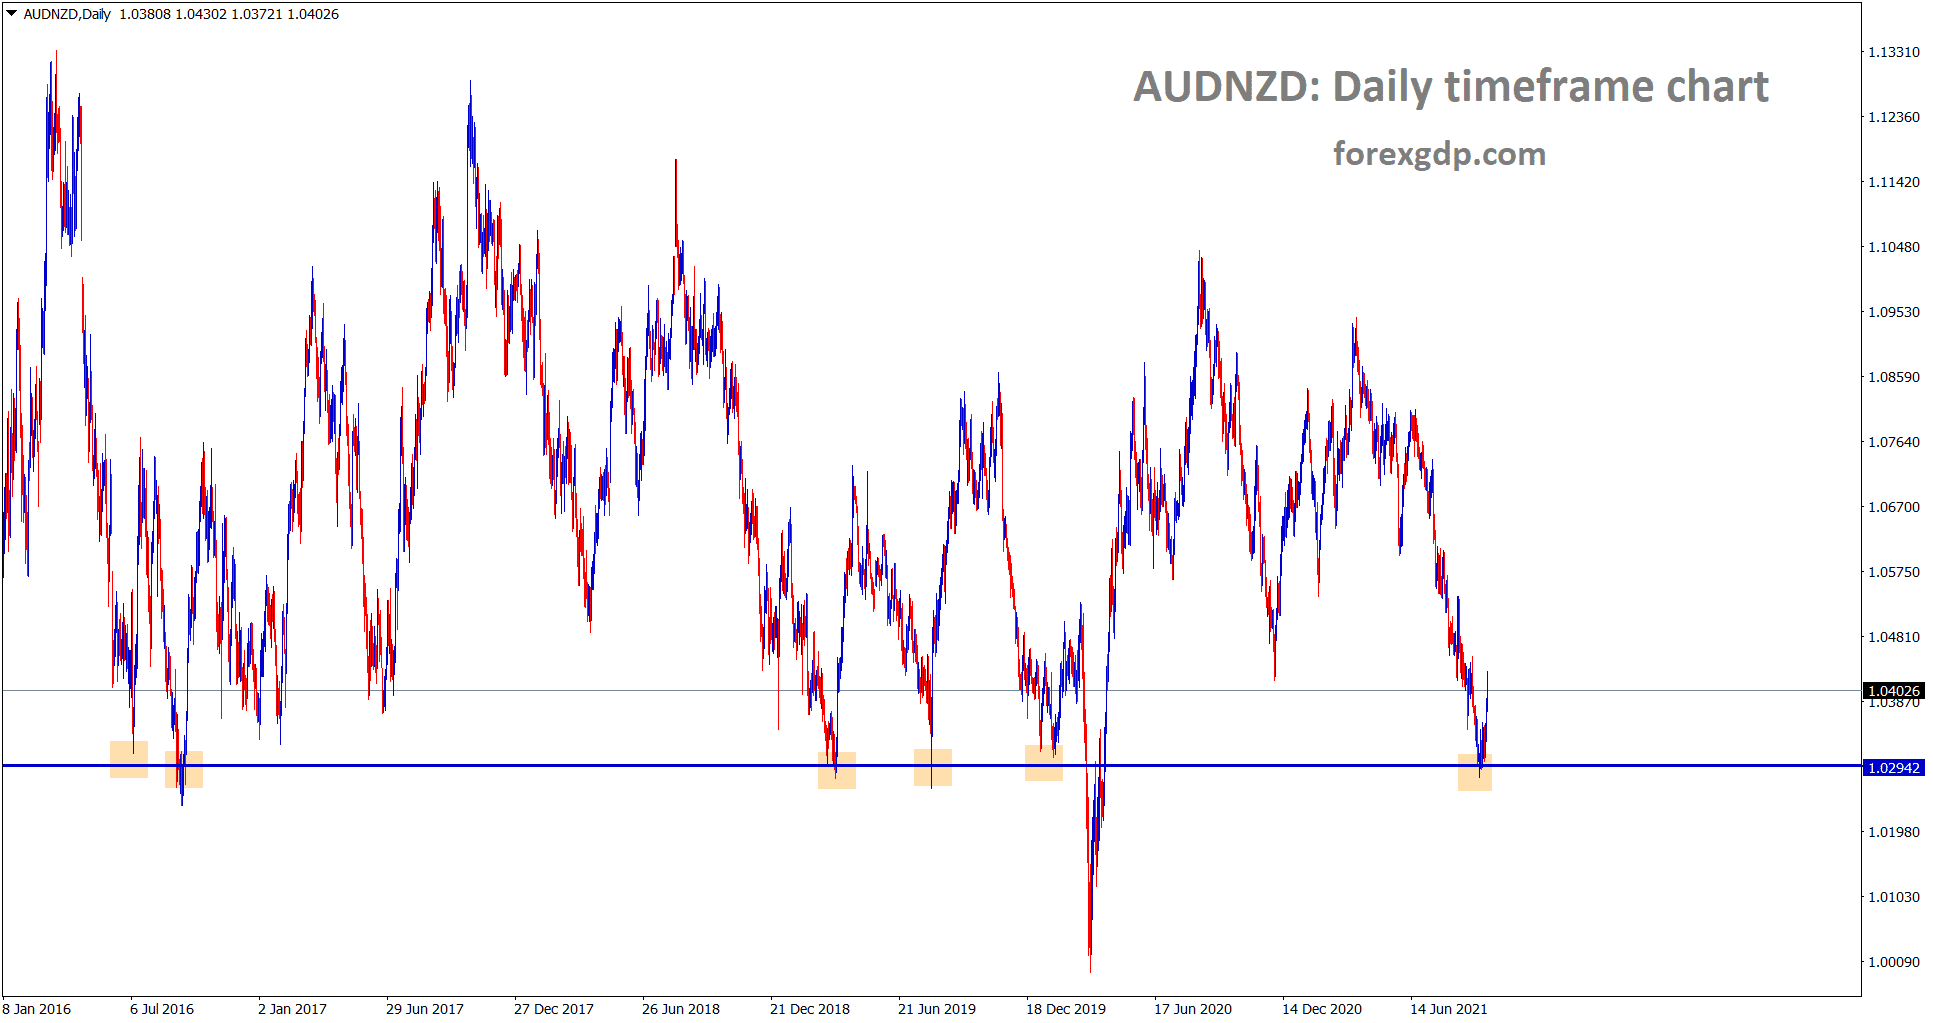 AUDNZD is rebounding from the support area